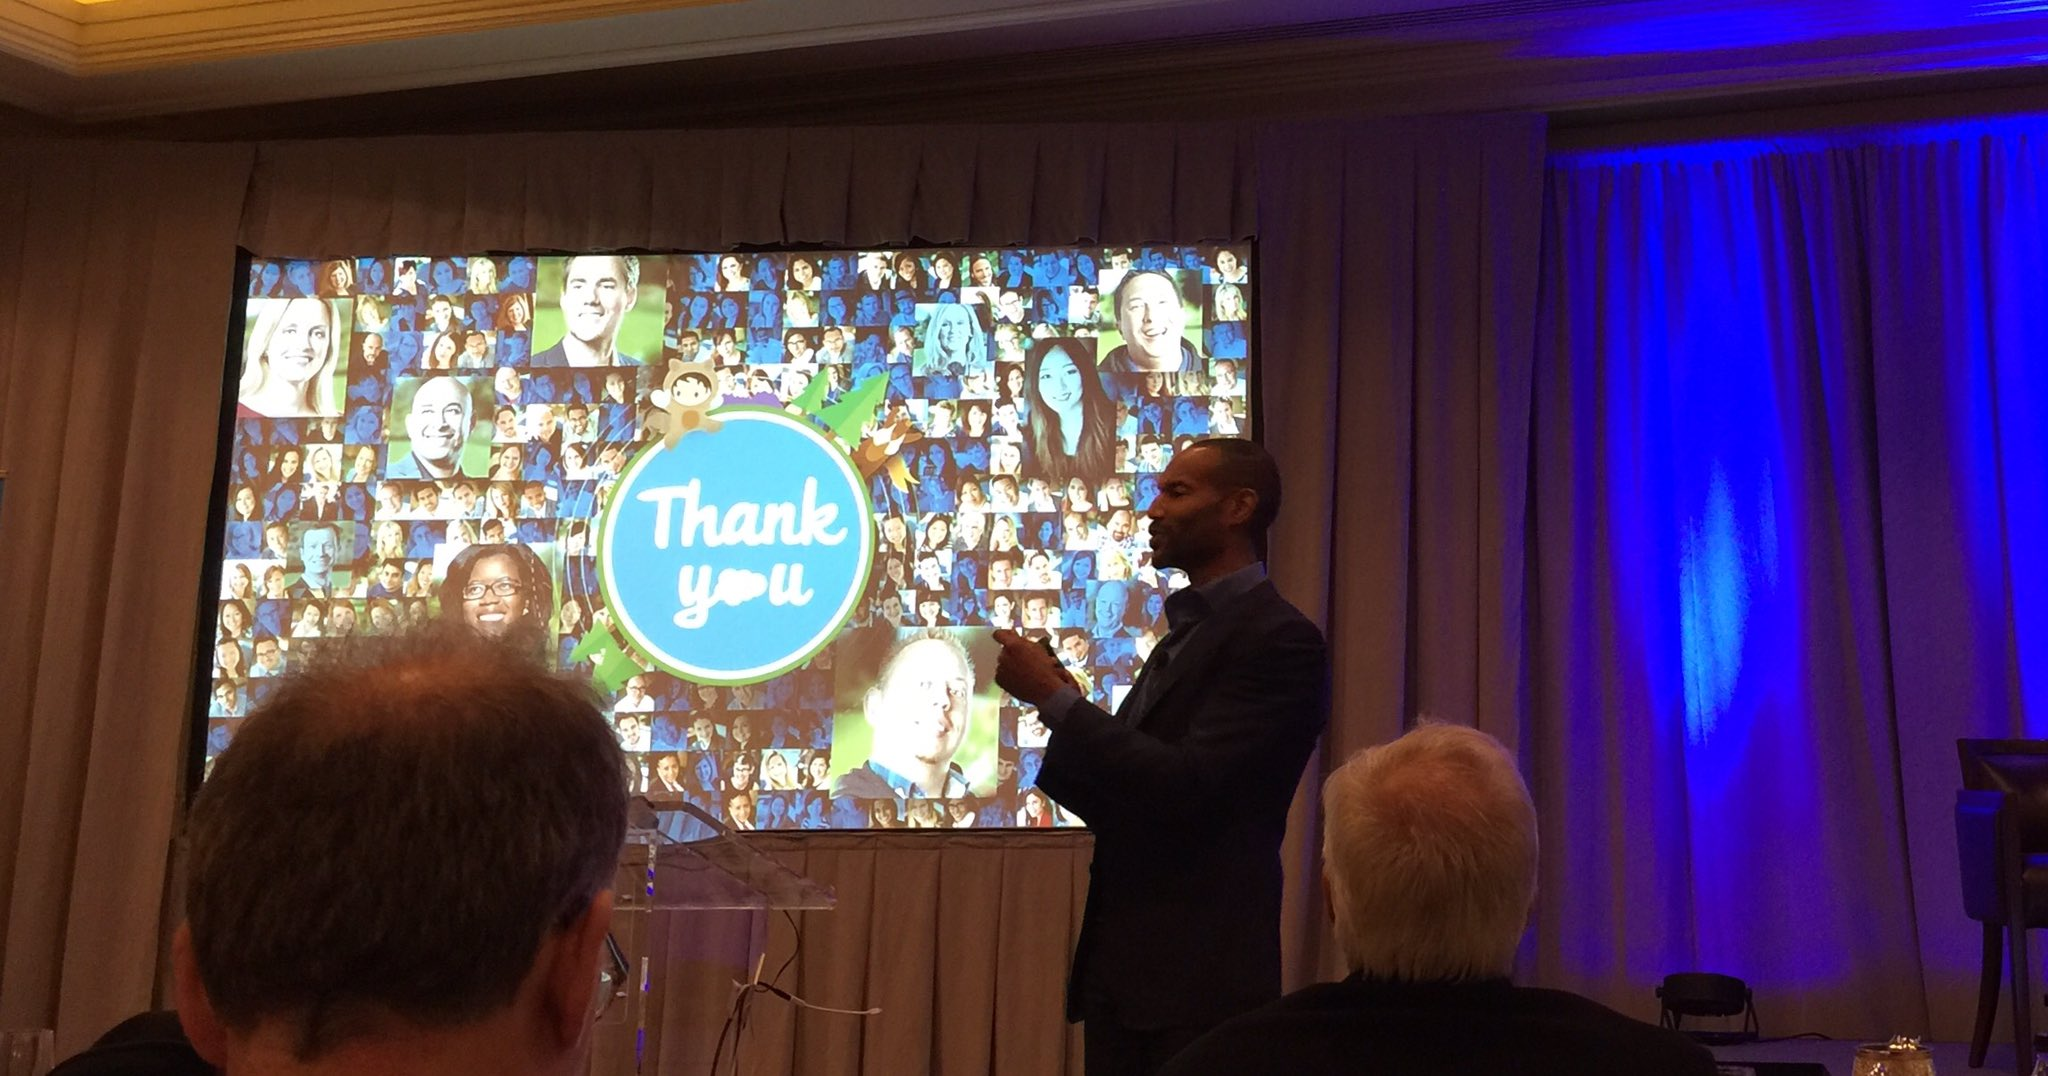 Chief Equality Officer @tony_prophet talking @salesforce culture and core values #SalesforceOhana #SalesforceAR https://t.co/d0Y2r4mLsw